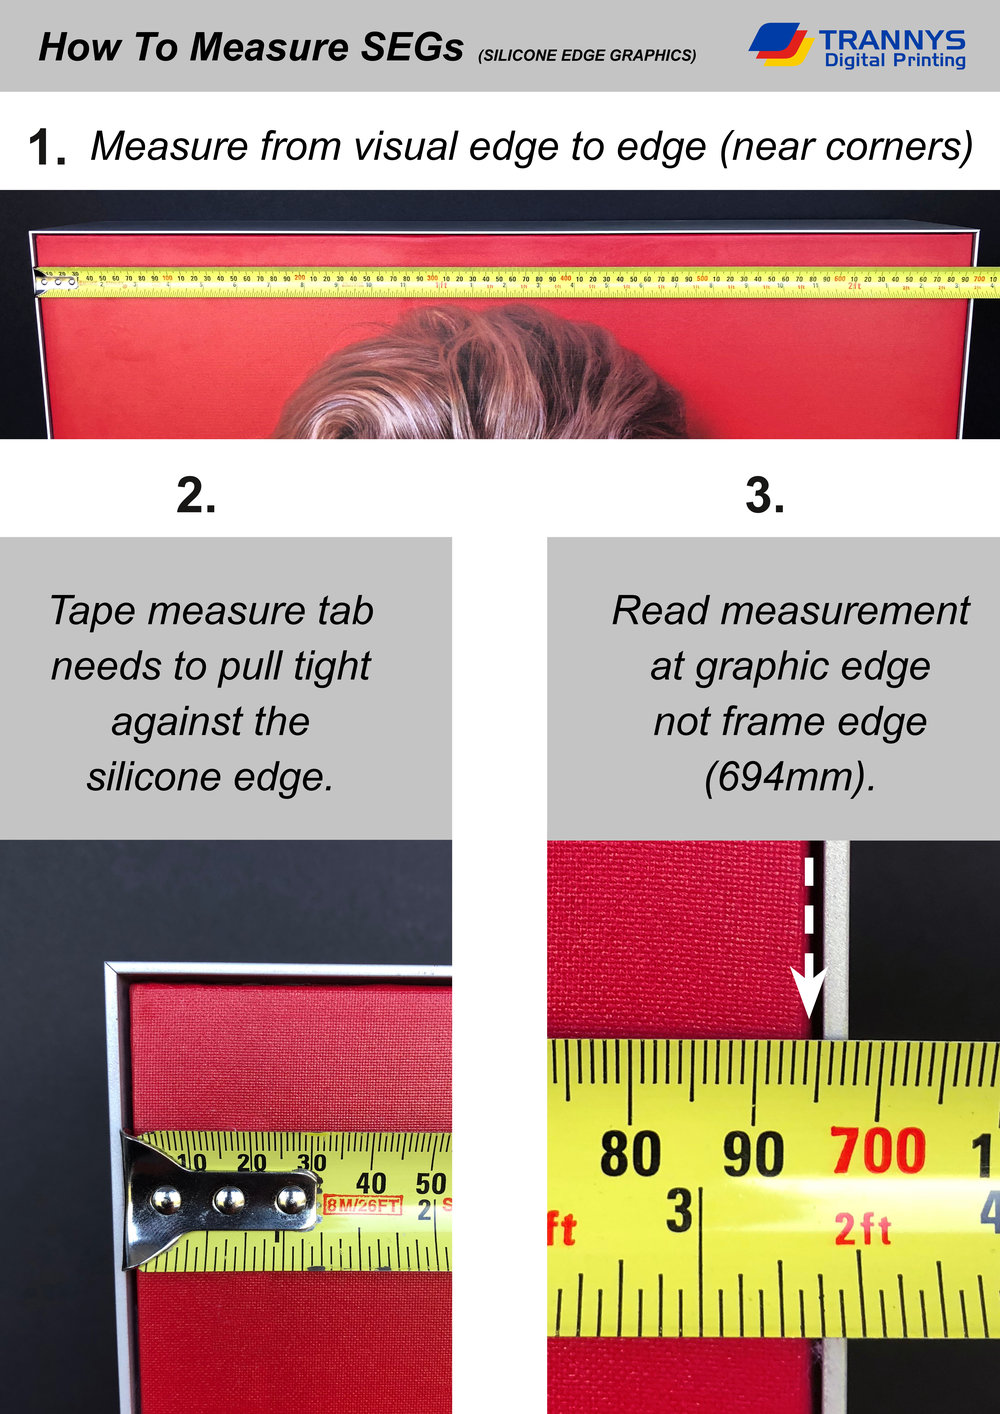 700x990_Measuring SEG_VISUAL EDGE_3.jpg